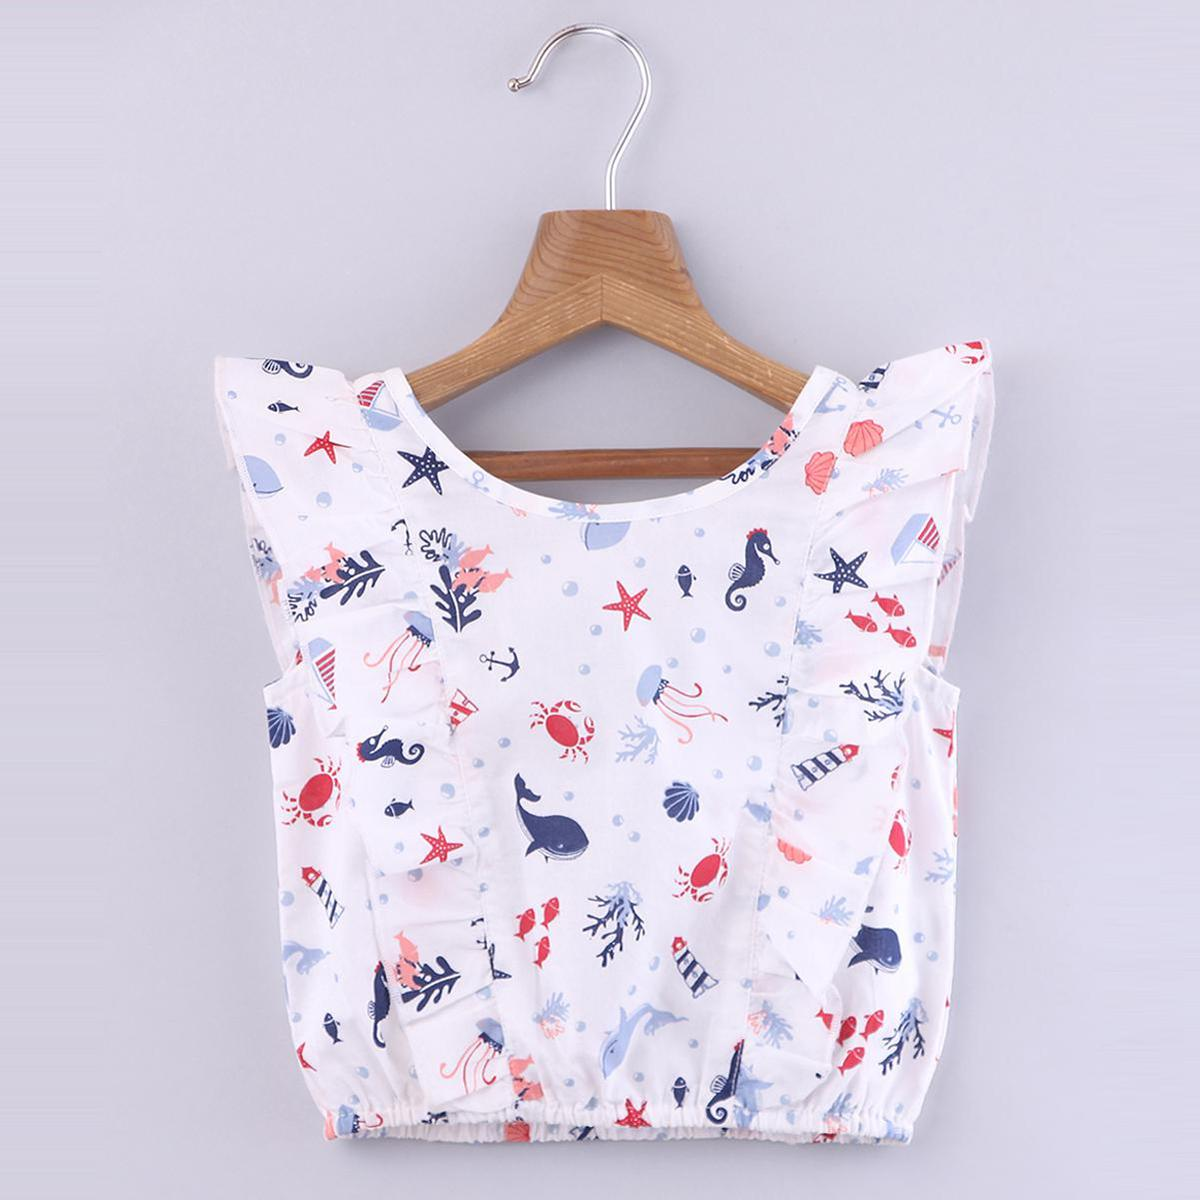 Beebay - Multior Colored Nautical Ruffle Cotton Top For Girls